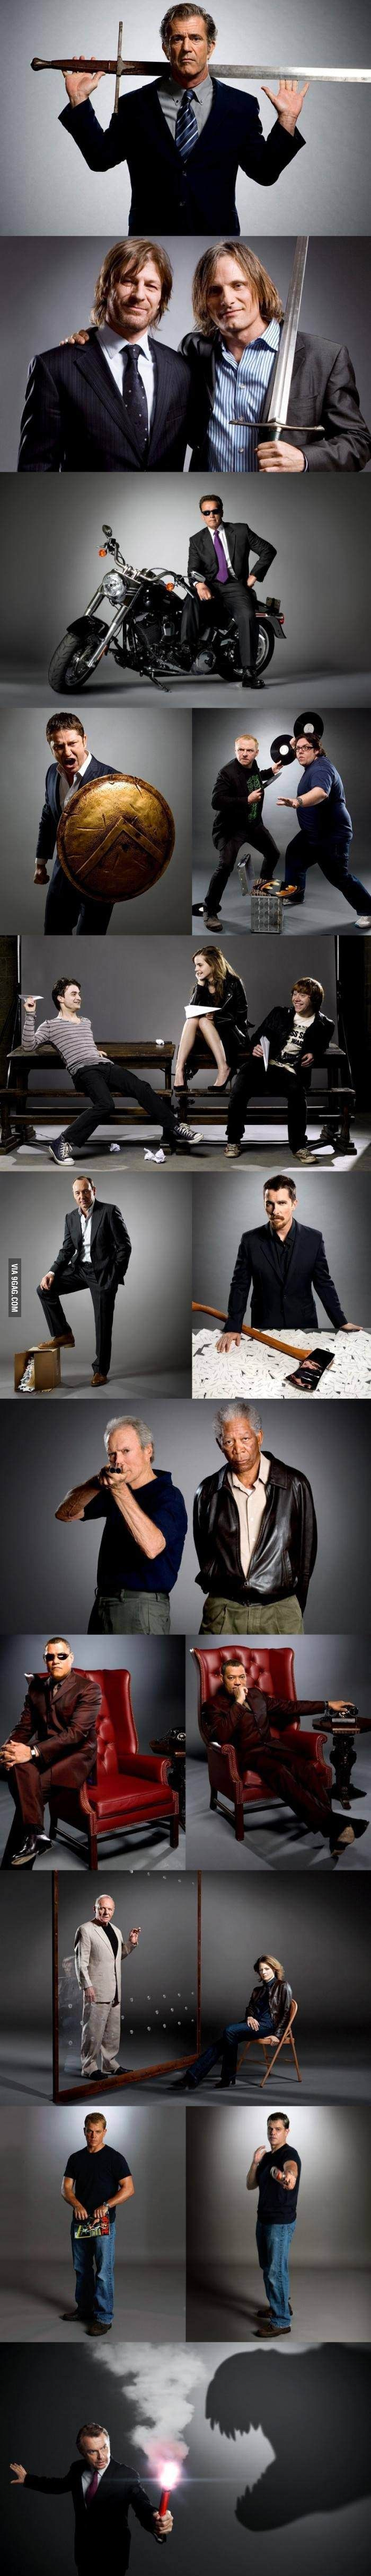 Actors and their best roles - 9GAG